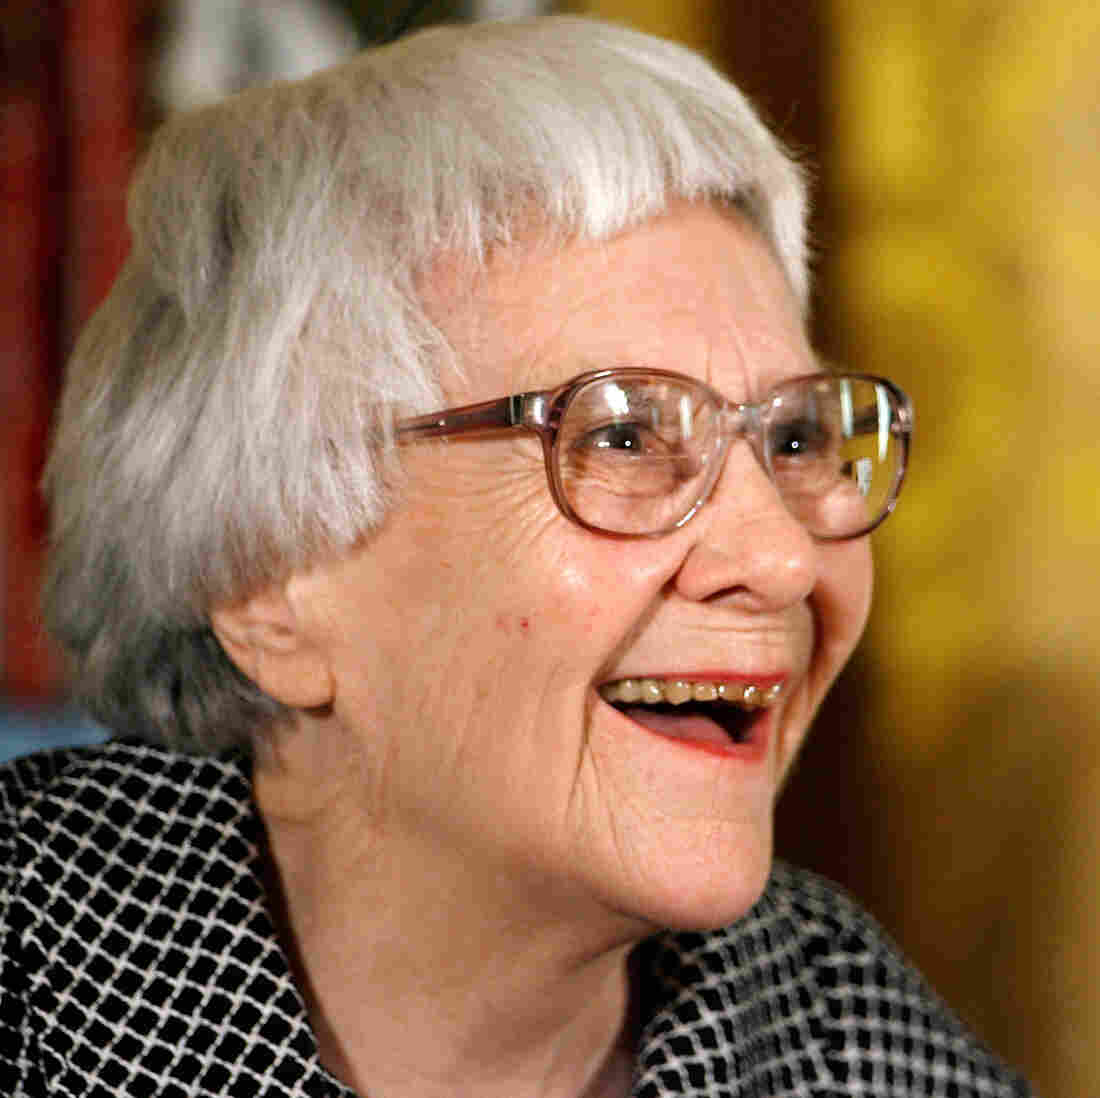 Harper Lee Plans To Publish A New Novel Featuring 'Mockingbird' Hero